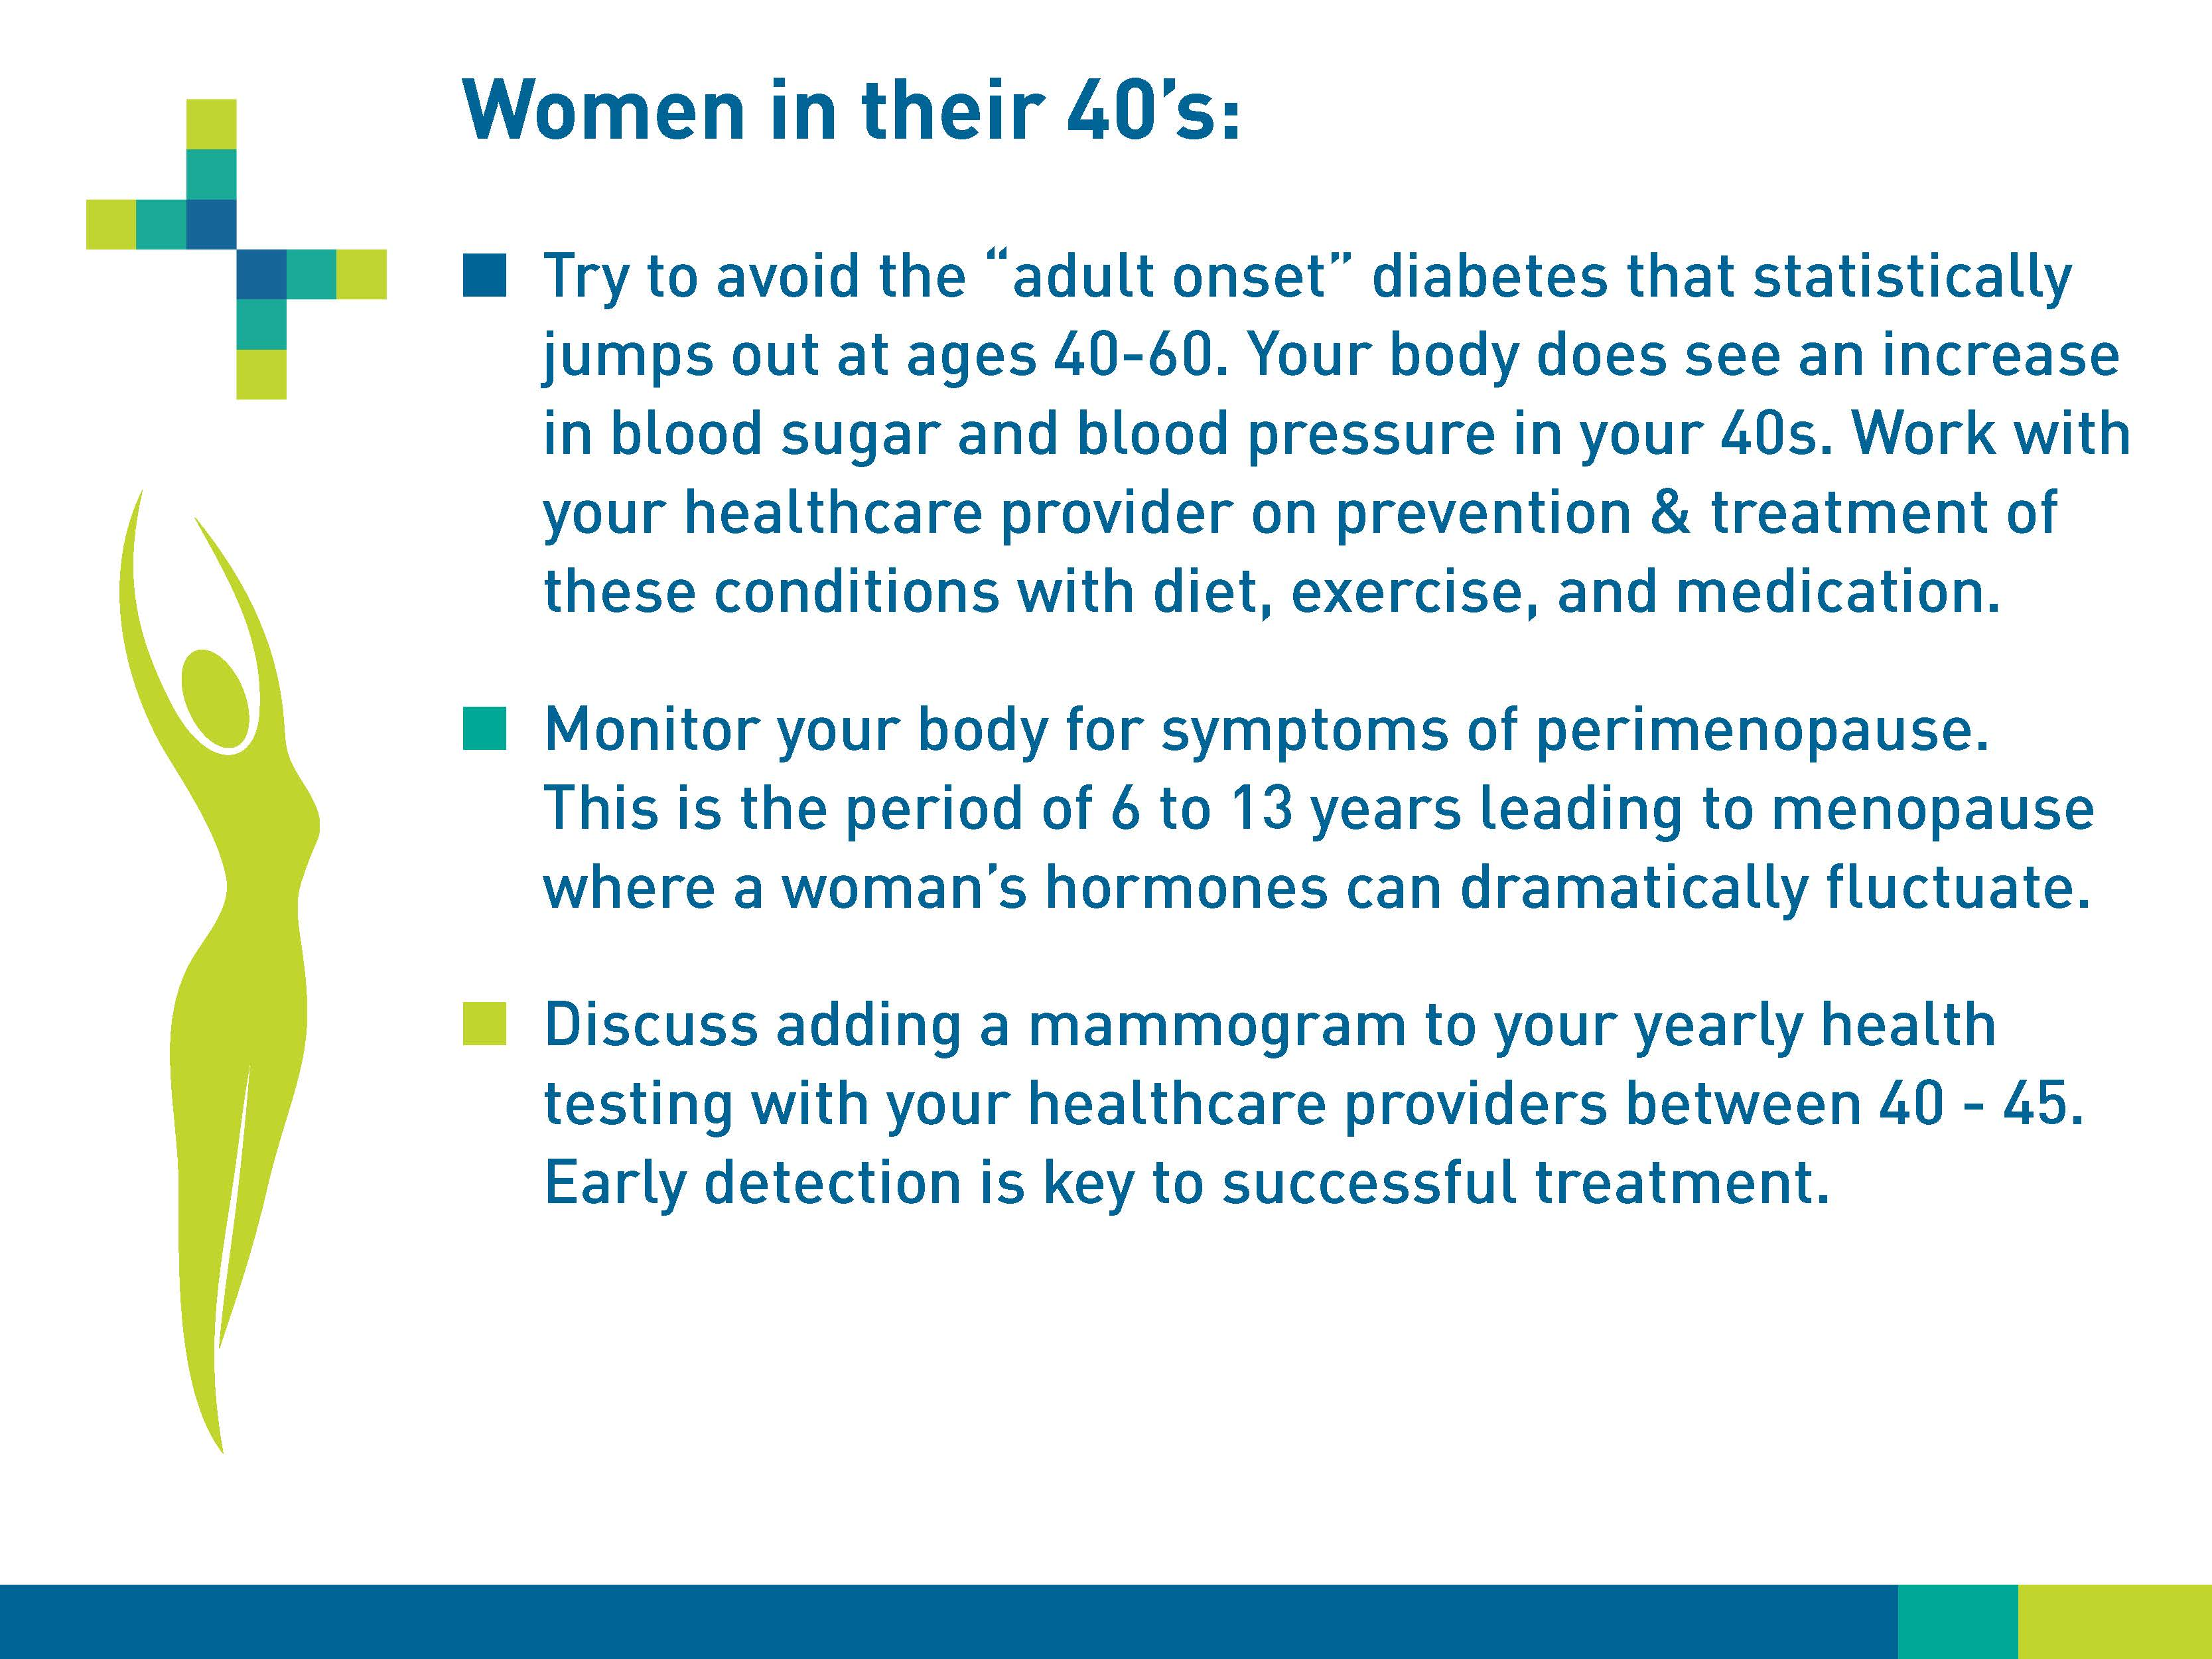 "Women in their 40s: Try to avoid the ""adult onset"" diabetes that statistically jumps out at age 40-60. Your body does see an increase in blood sugar and blood pressure in your 40s. Work with your healthcare provider on prevention & treatment of these conditions with diet, exercise, and medication. Monitor your body for symptoms of perimenopause. This is the period of 6 to 13 years leading to menopause where a woman's hormones can dramatically fluctuate. Discuss adding a mammogram to your yearly health testing with your healthcare providers between 40-45. Early detection is key to successful treatment."